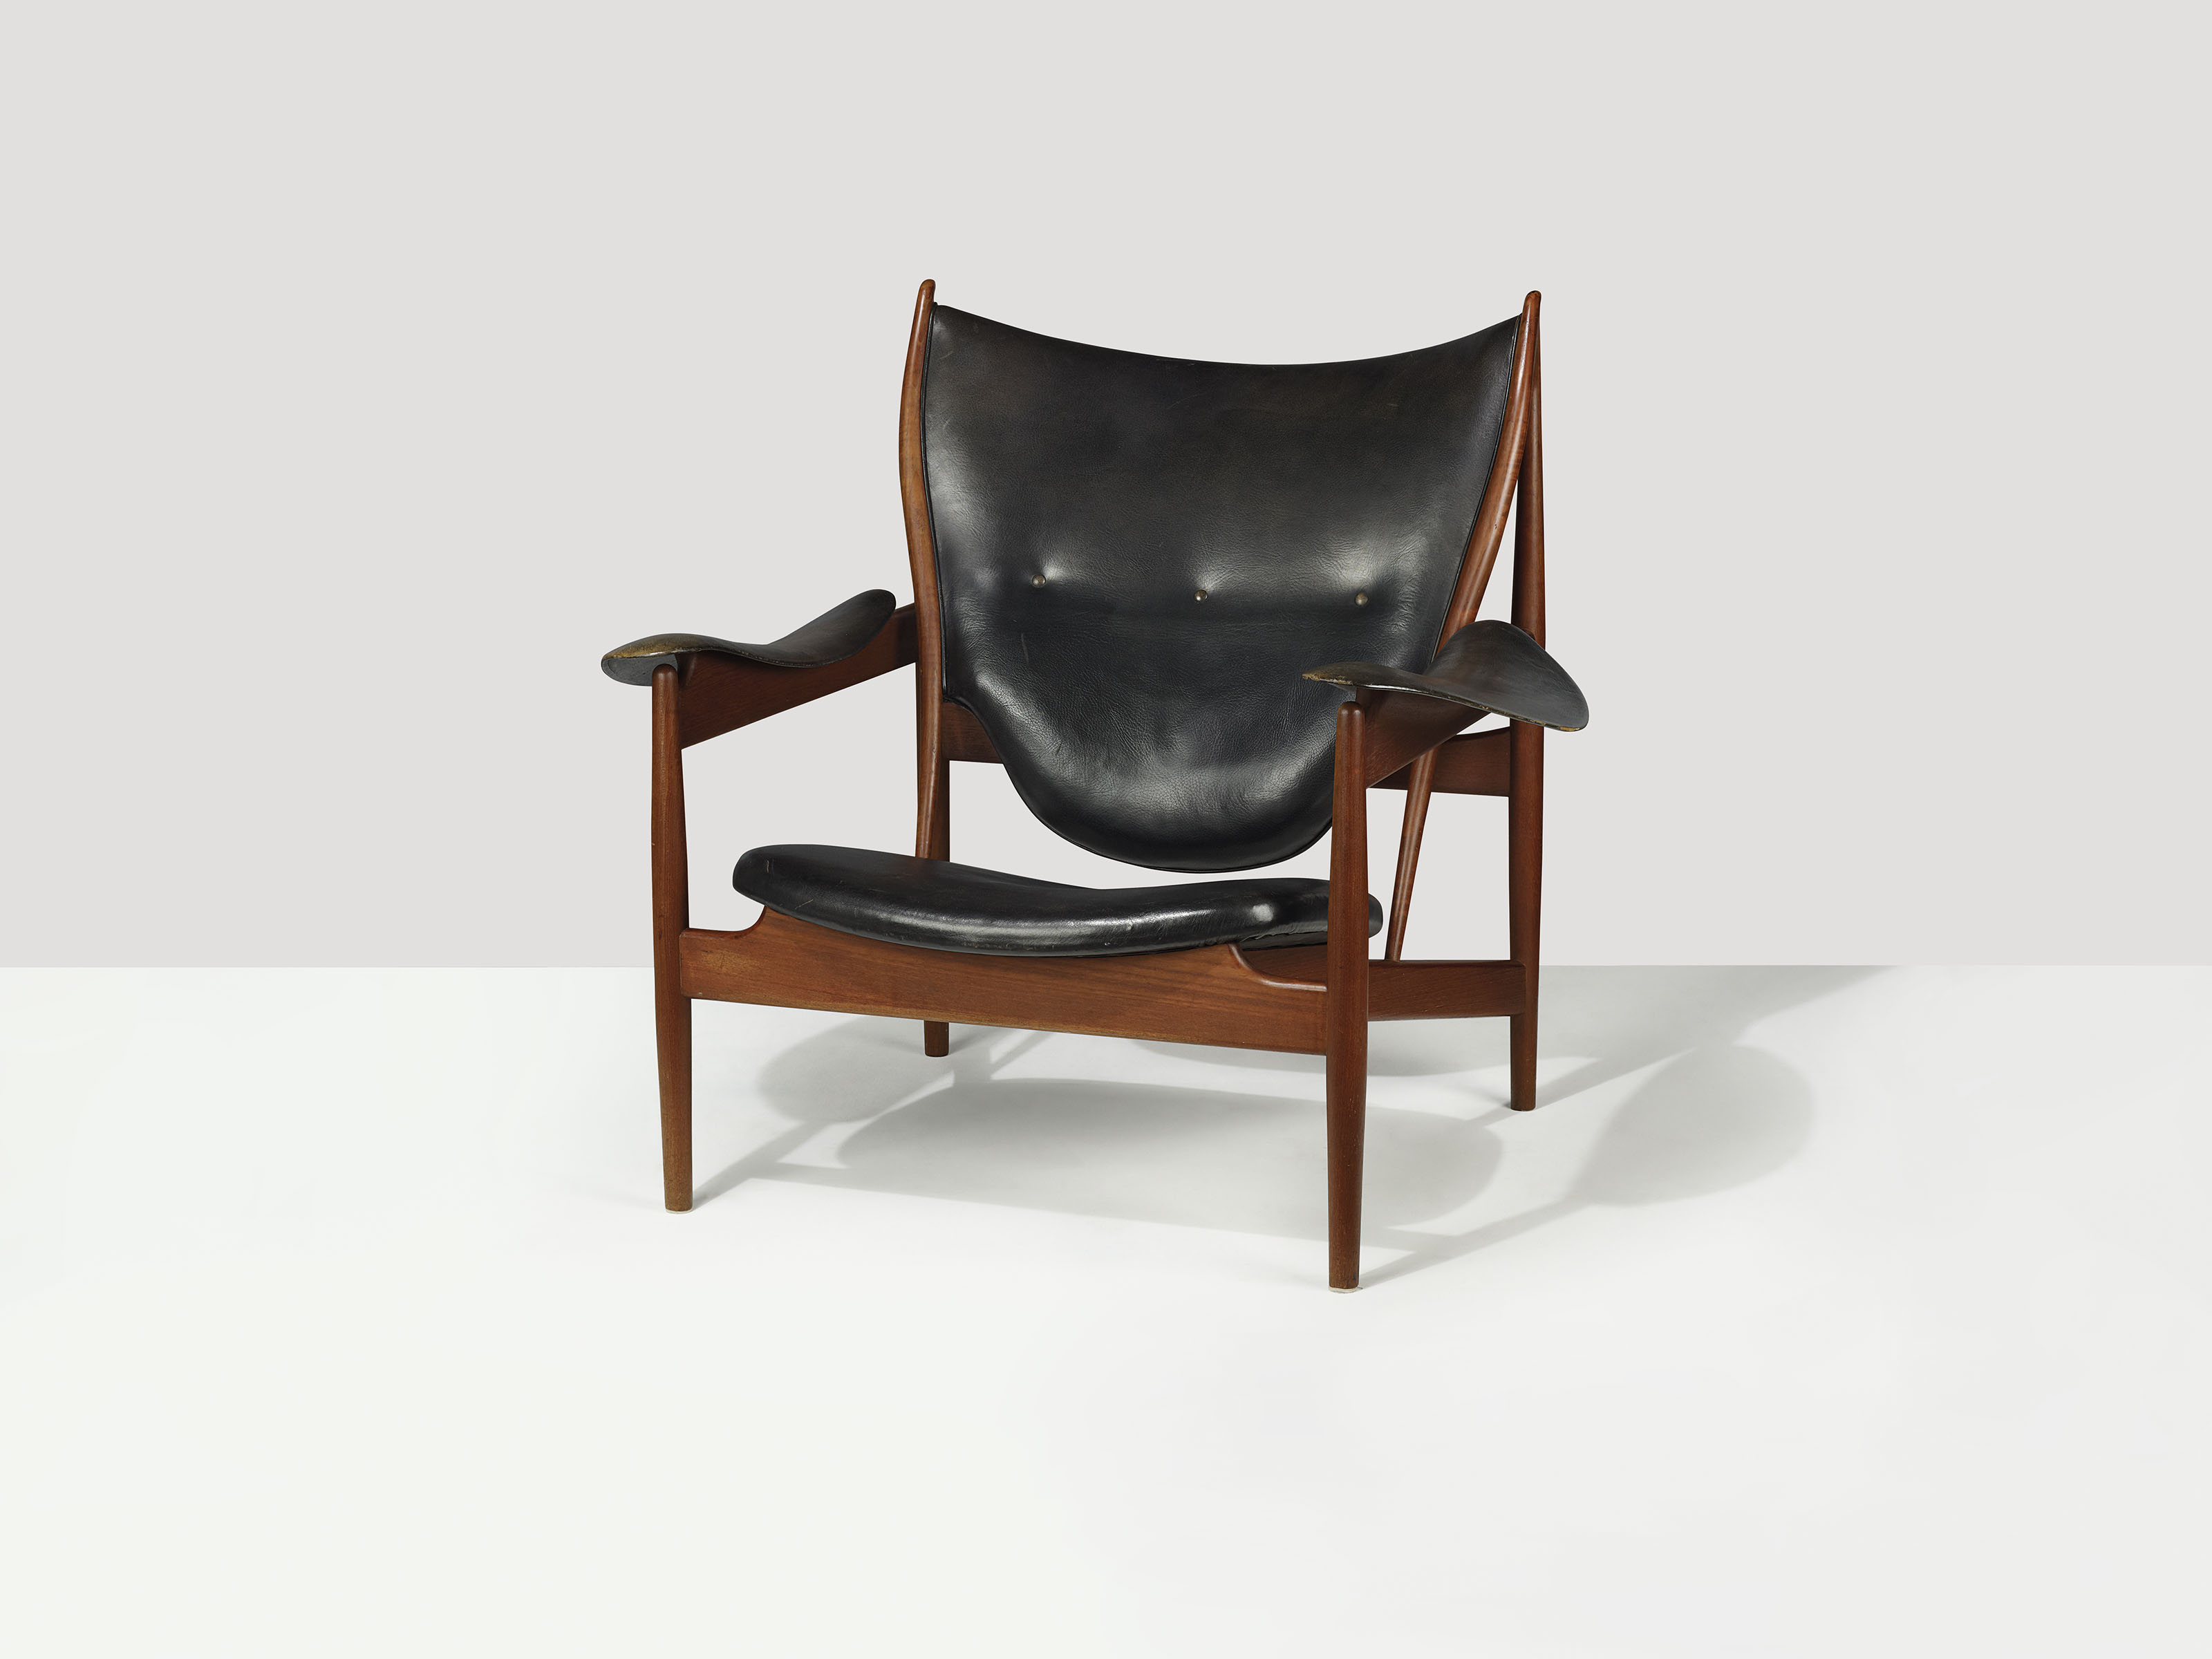 Finn Juhl (1912-1989),  Chieftain Chair, designed in 1949, this example executed mid 1950s. 36⅝ high x 41 wide x 35½  in deep (93 x 104 x 90  cm). Estimate £50,000-80,000. This lot is offered in Masterpieces of Design & Photography on 3 October 2017  at Christie's in London